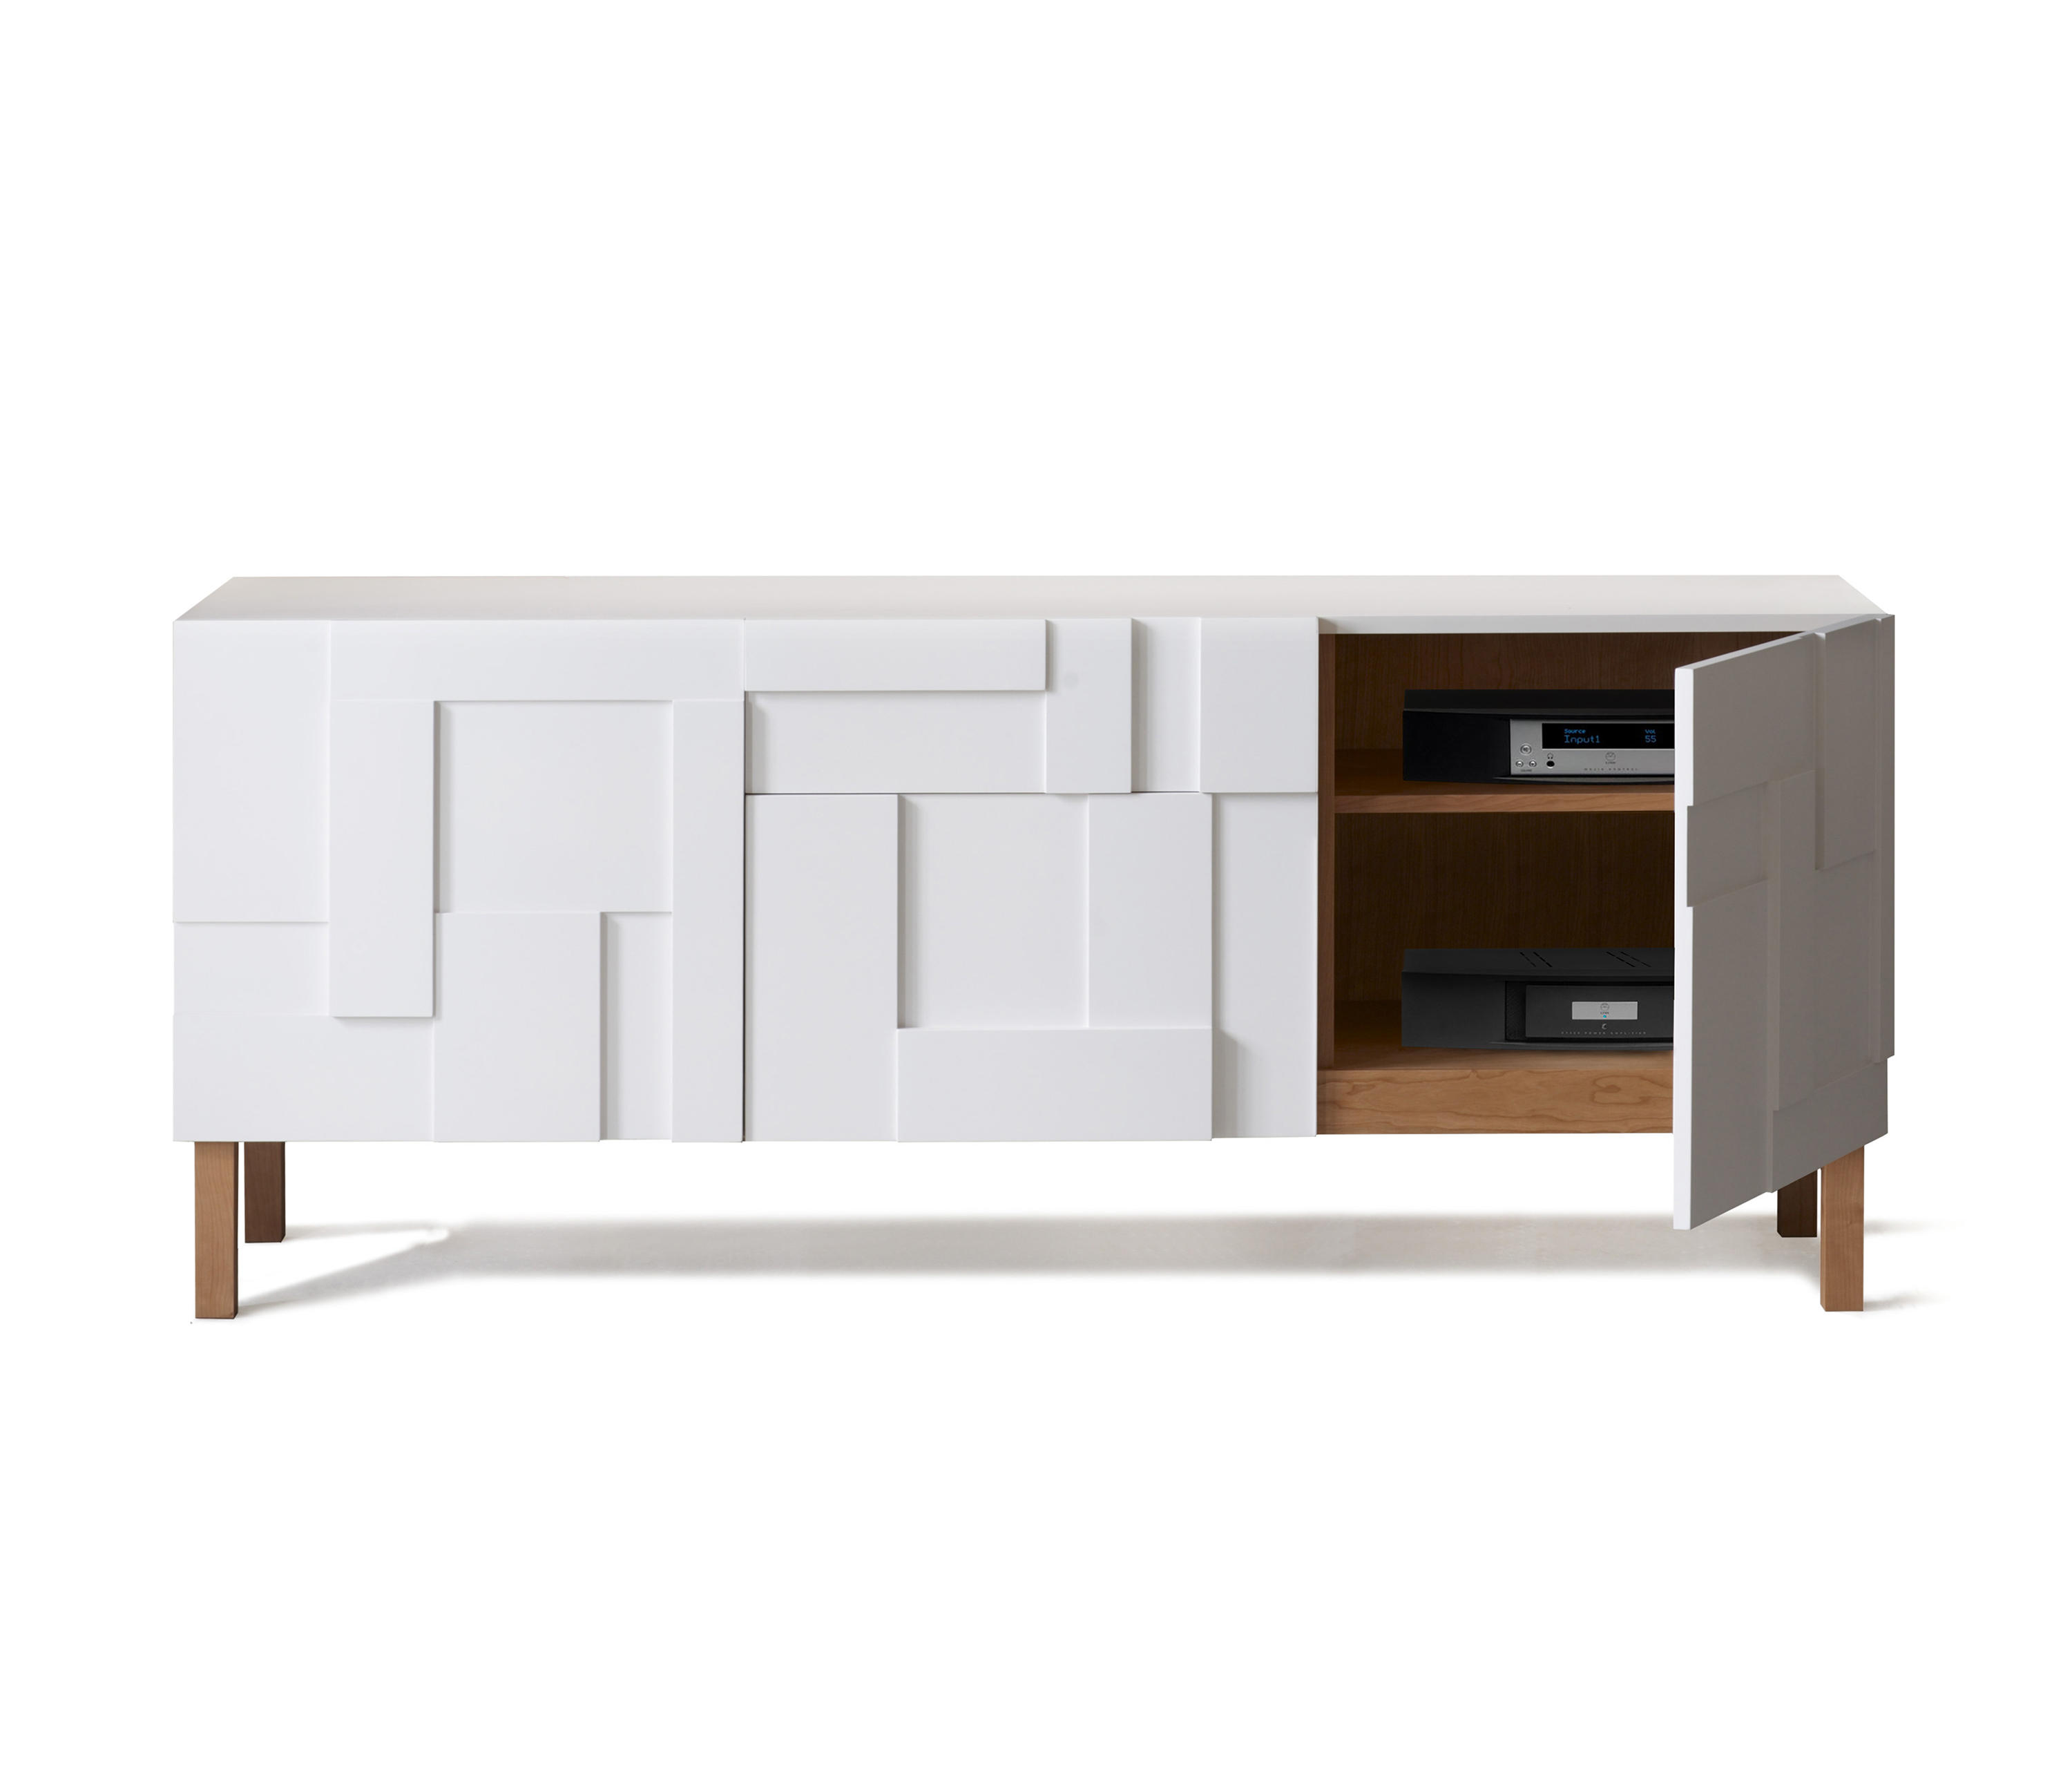 Kommoden Sideboards : Alba sideboard sideboards kommoden von pinch architonic